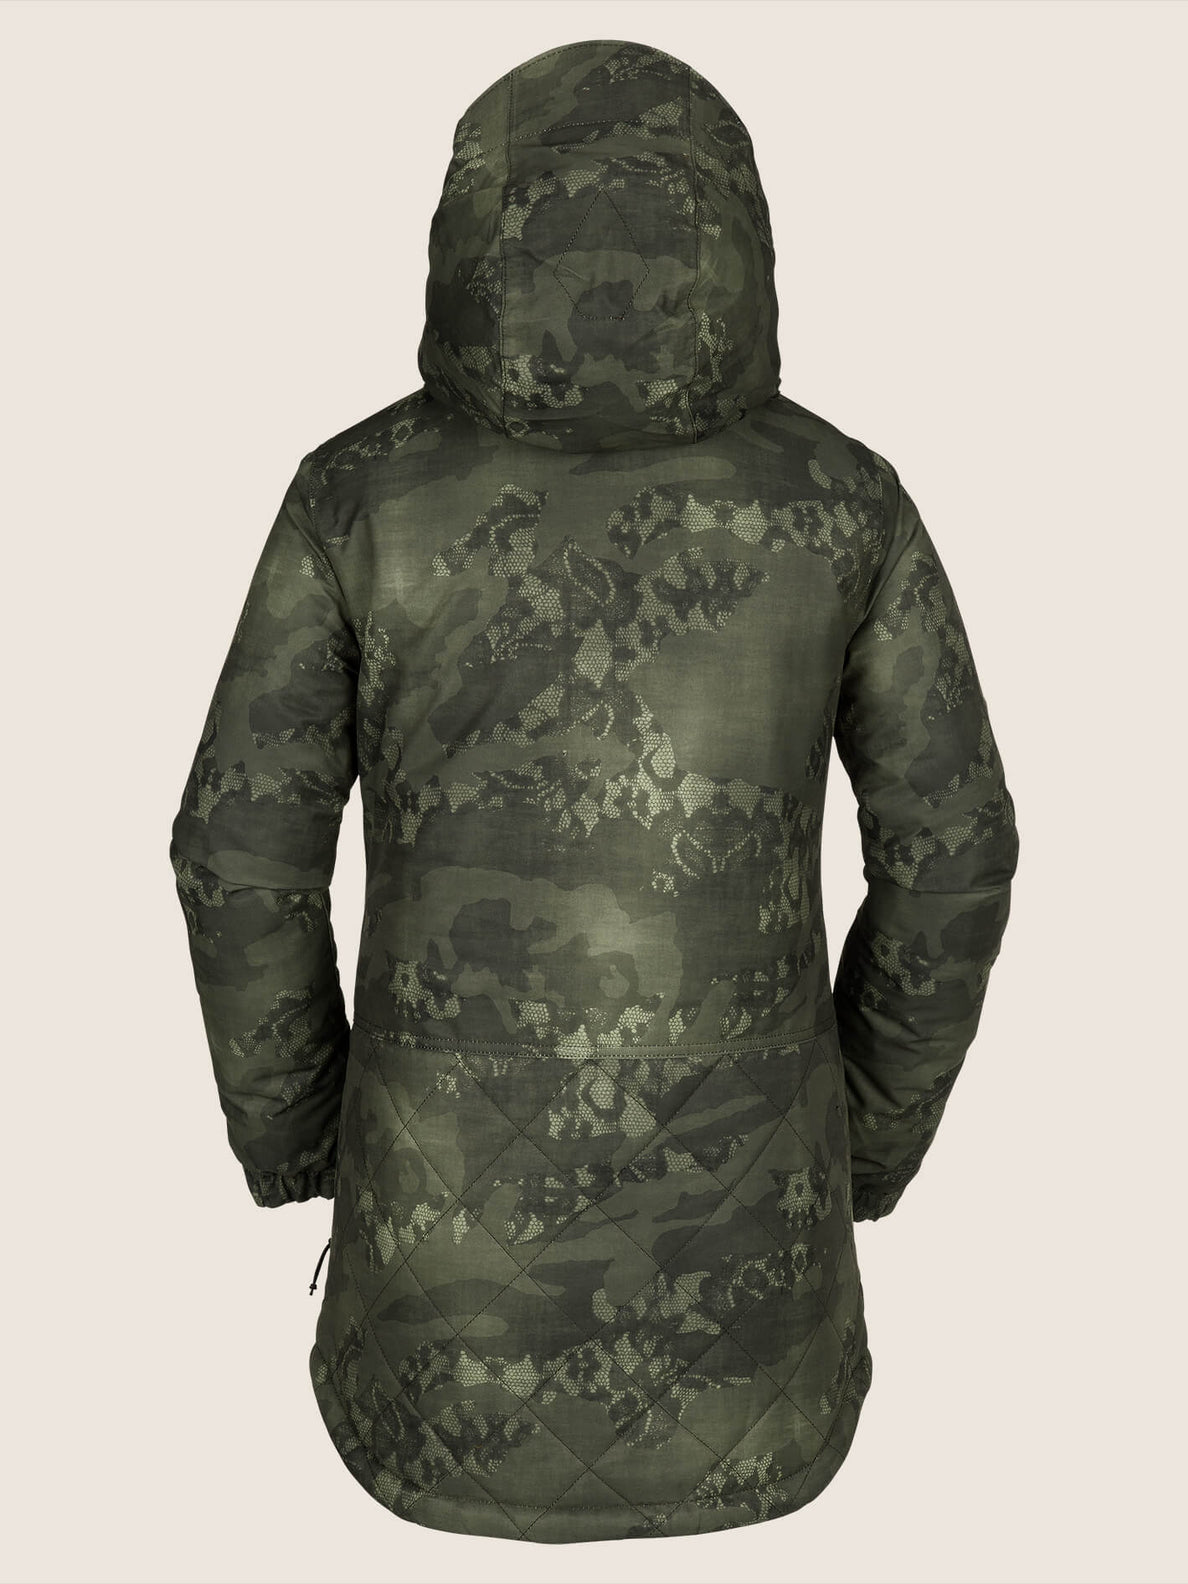 Winrose Insulated Jacket In Camouflage, Back View